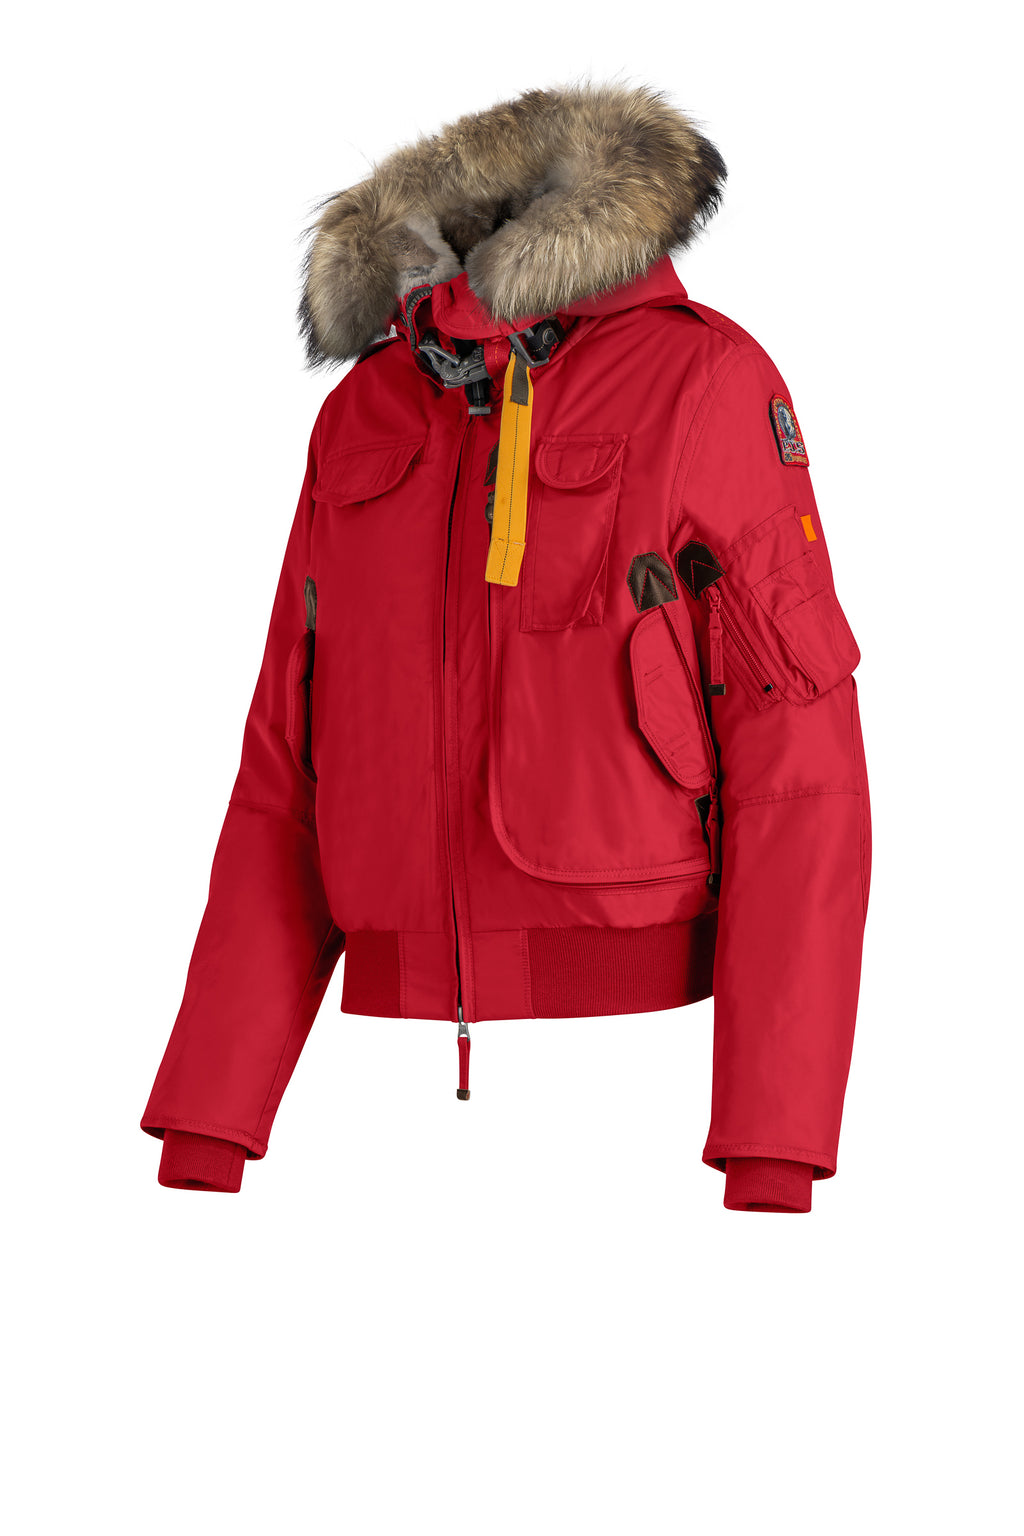 Parajumpers Gobi Women's Bomber Jacket in Scarlett